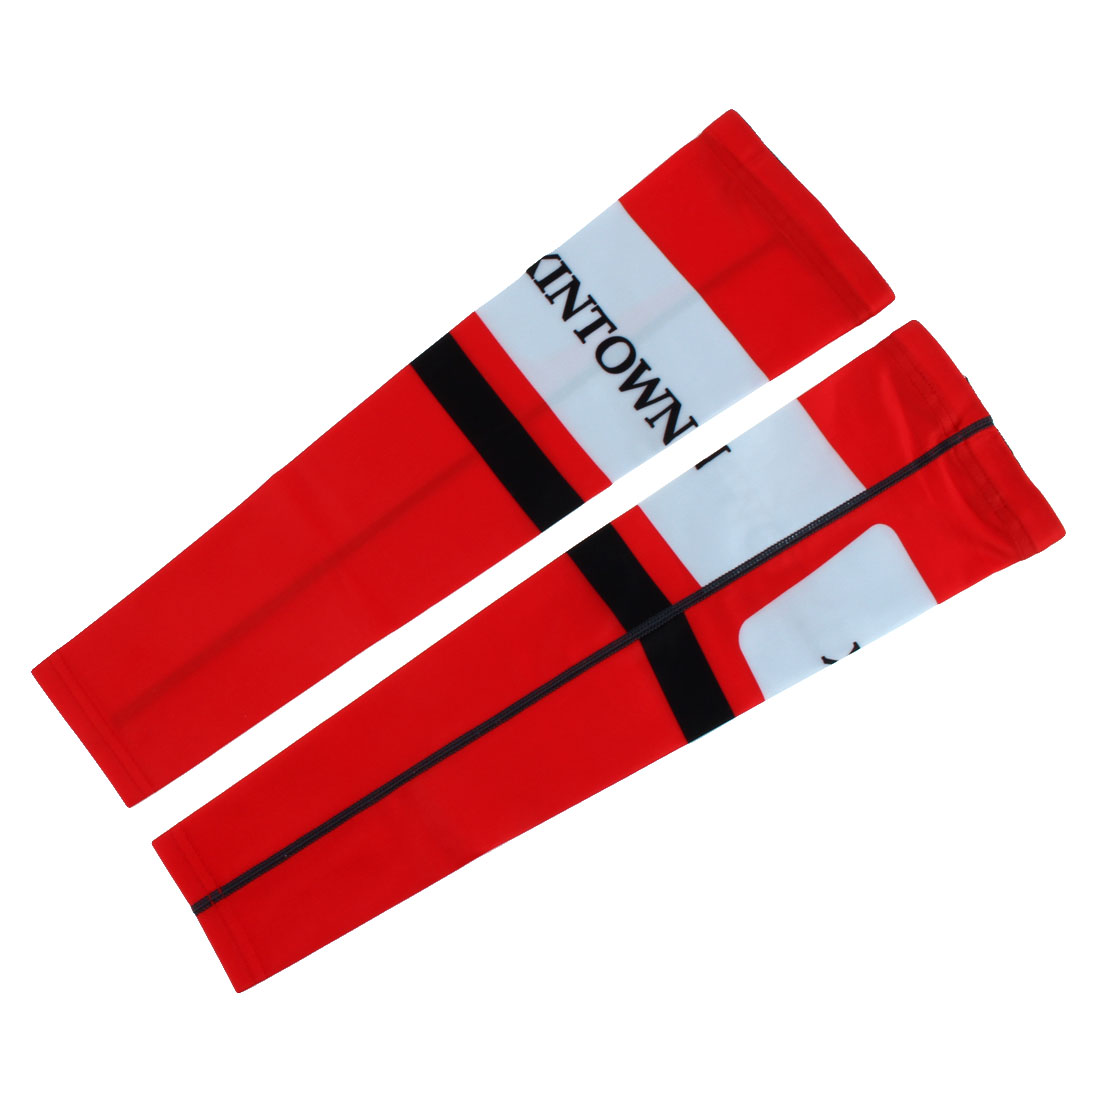 XINTOWN Authorized Unisex Cycling Basketball Arm Sleeves Cover Warmer #5 M Pair